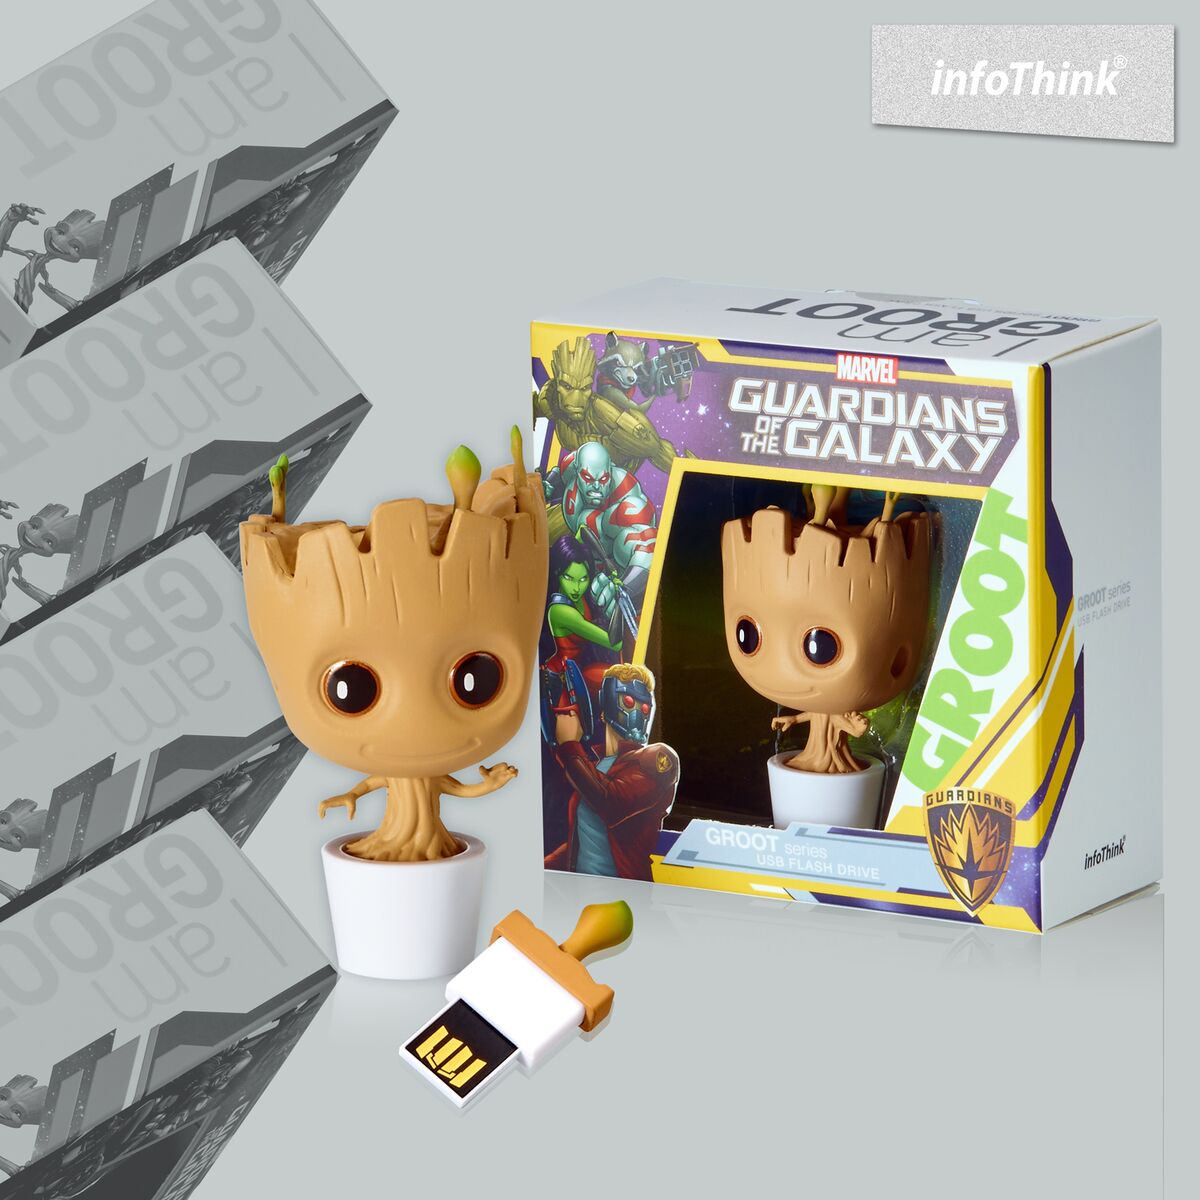 GROOT Series USB (8 GB)